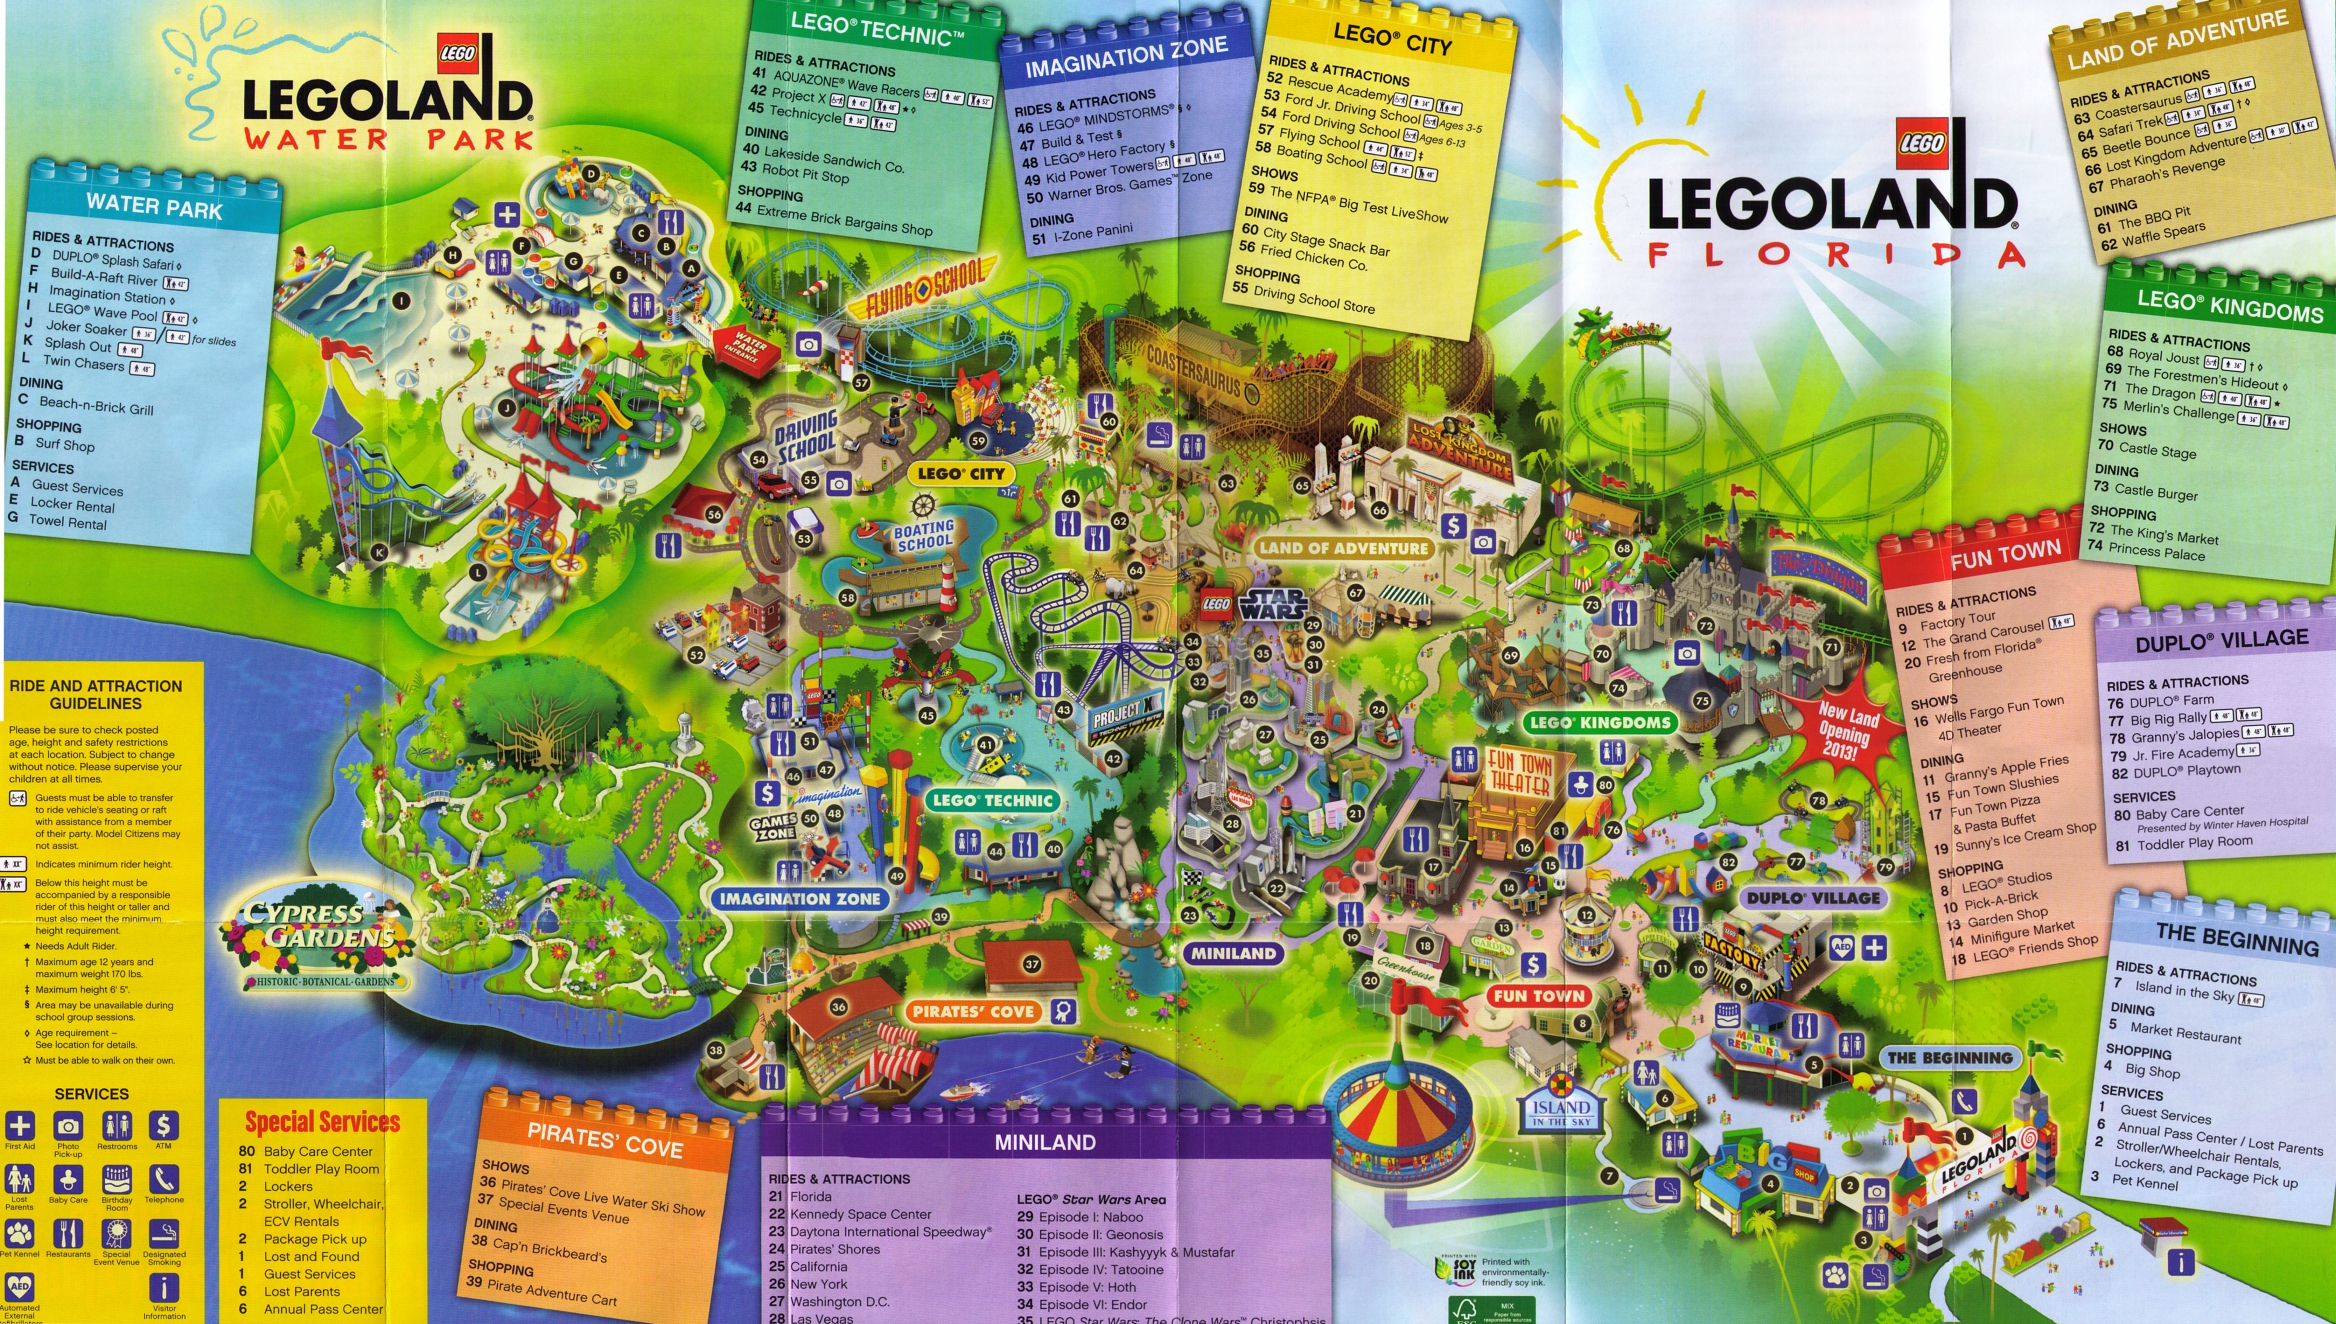 Park Map 3 At Legoland Florida Photos - Legoland Map Florida